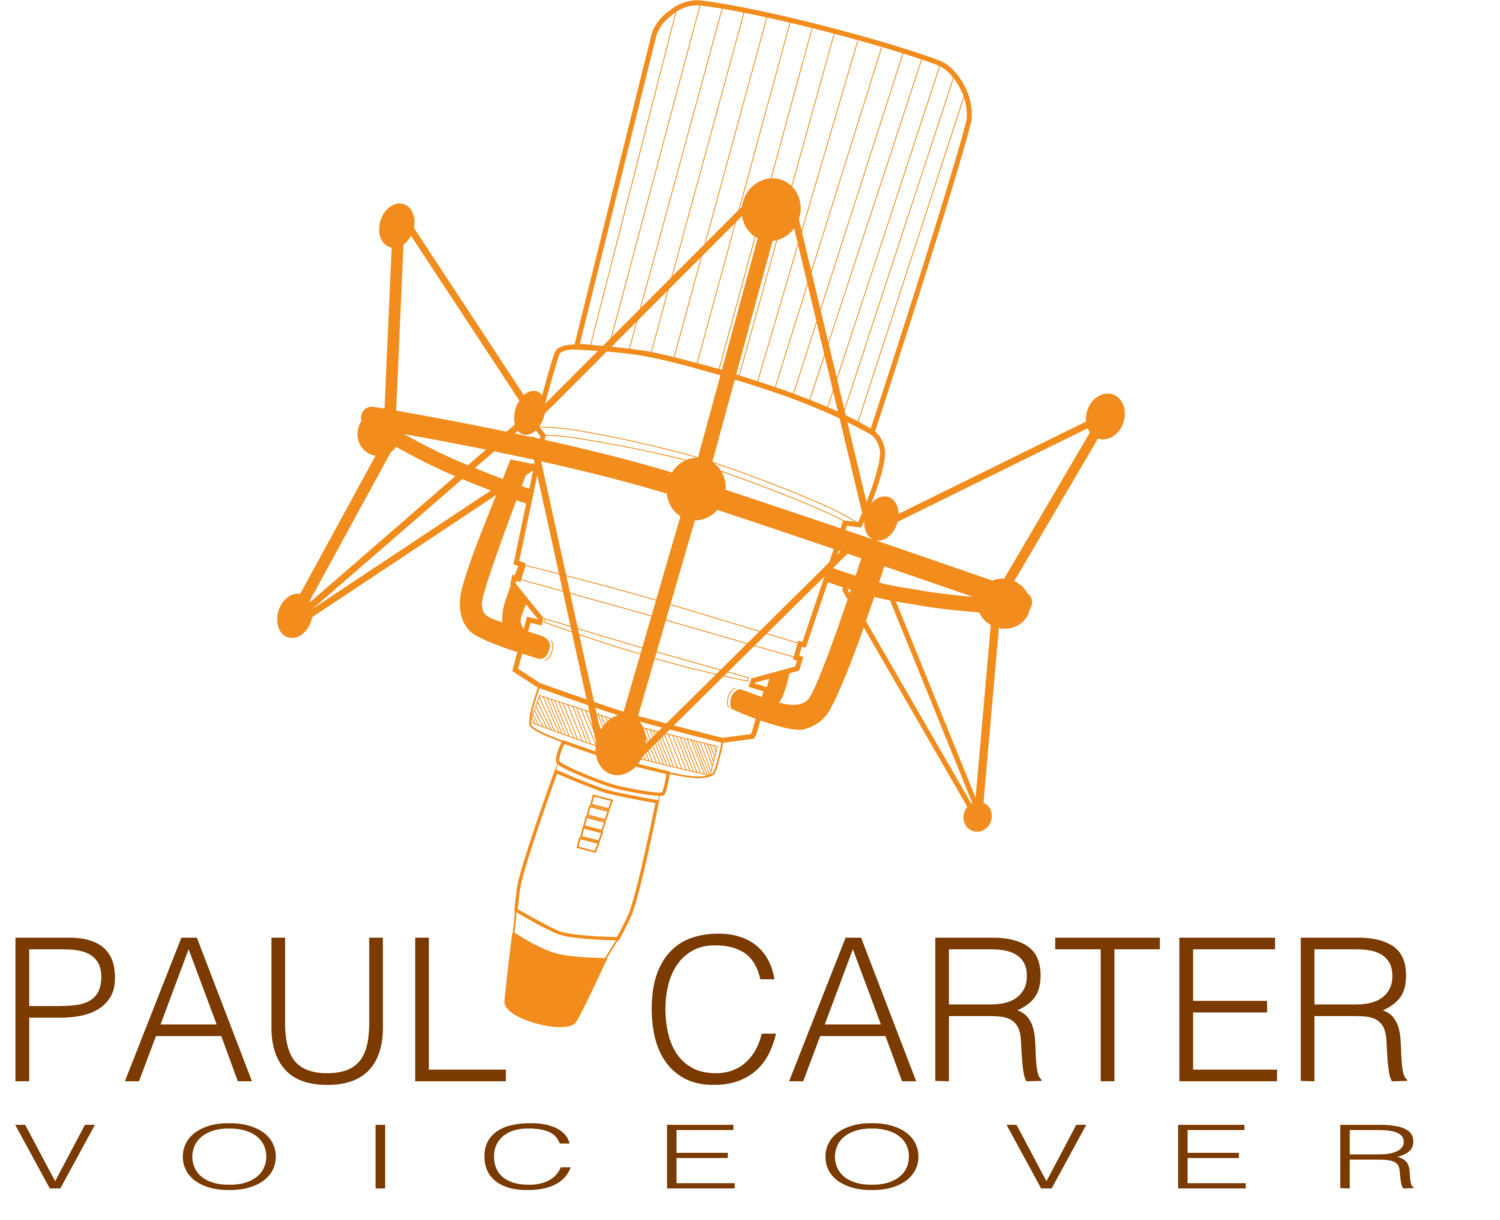 Paul Carter Voiceover